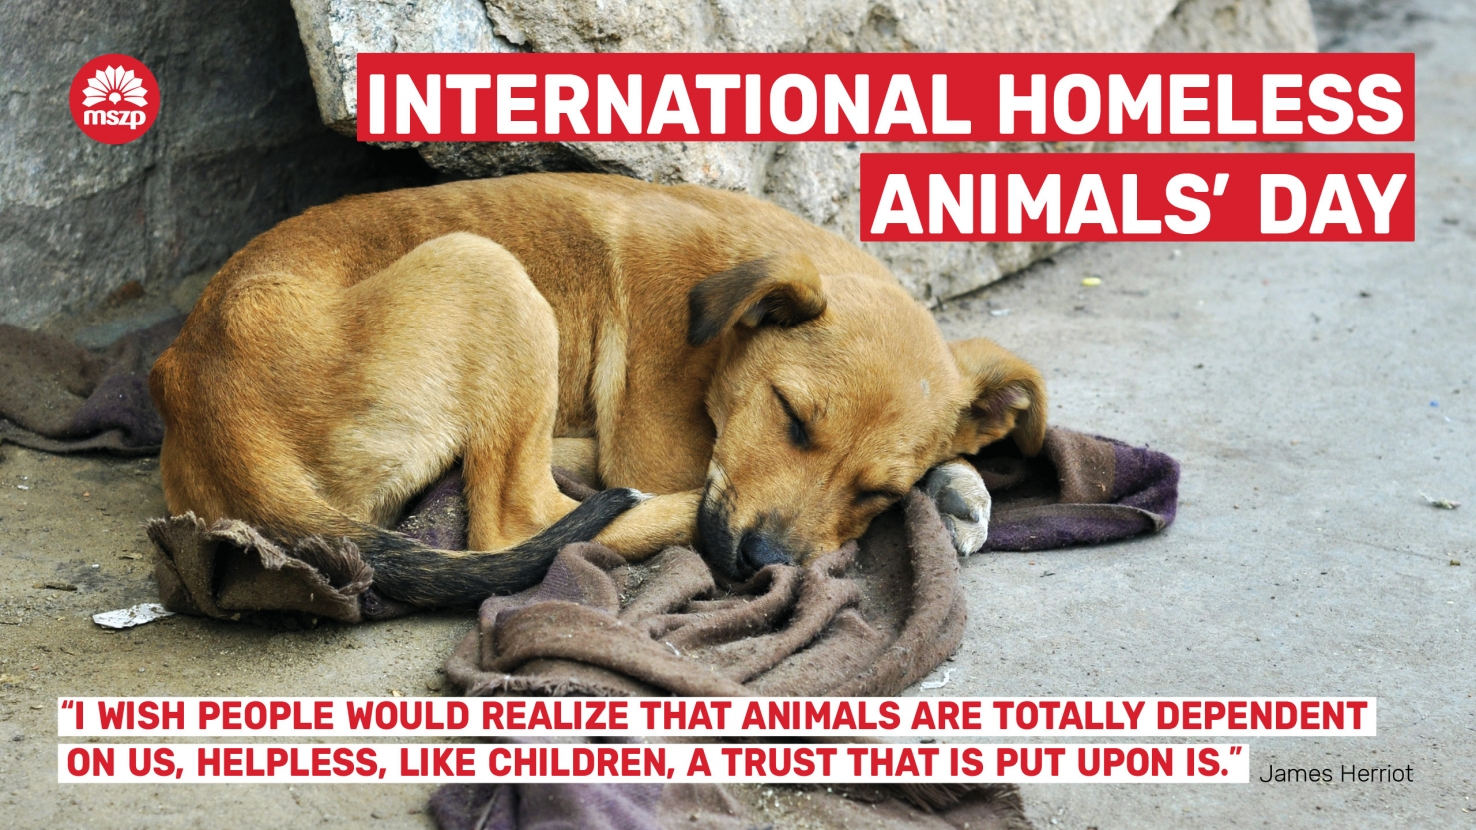 International Homeless Animals' Day